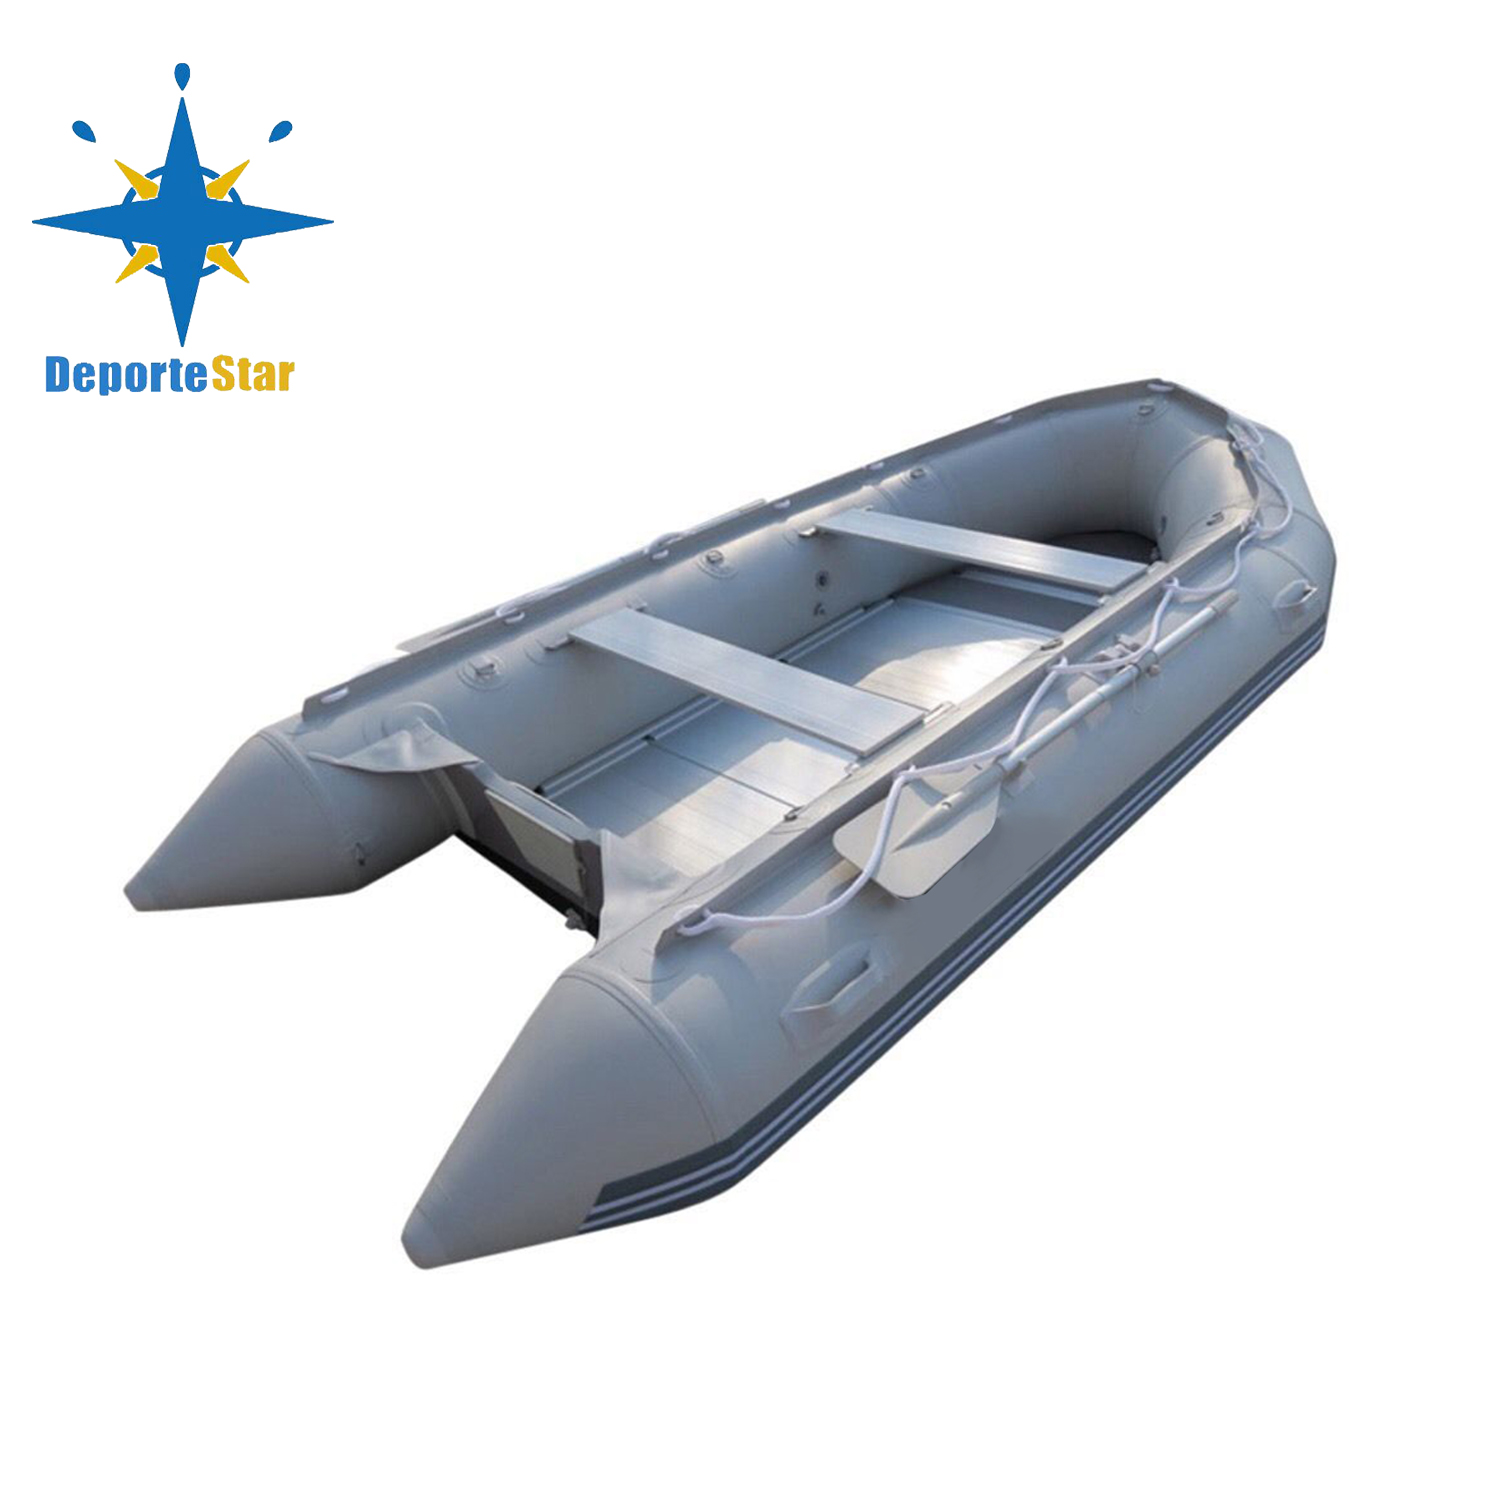 DeporteStar 2019 HZX-HY 470 Inflatable Boat